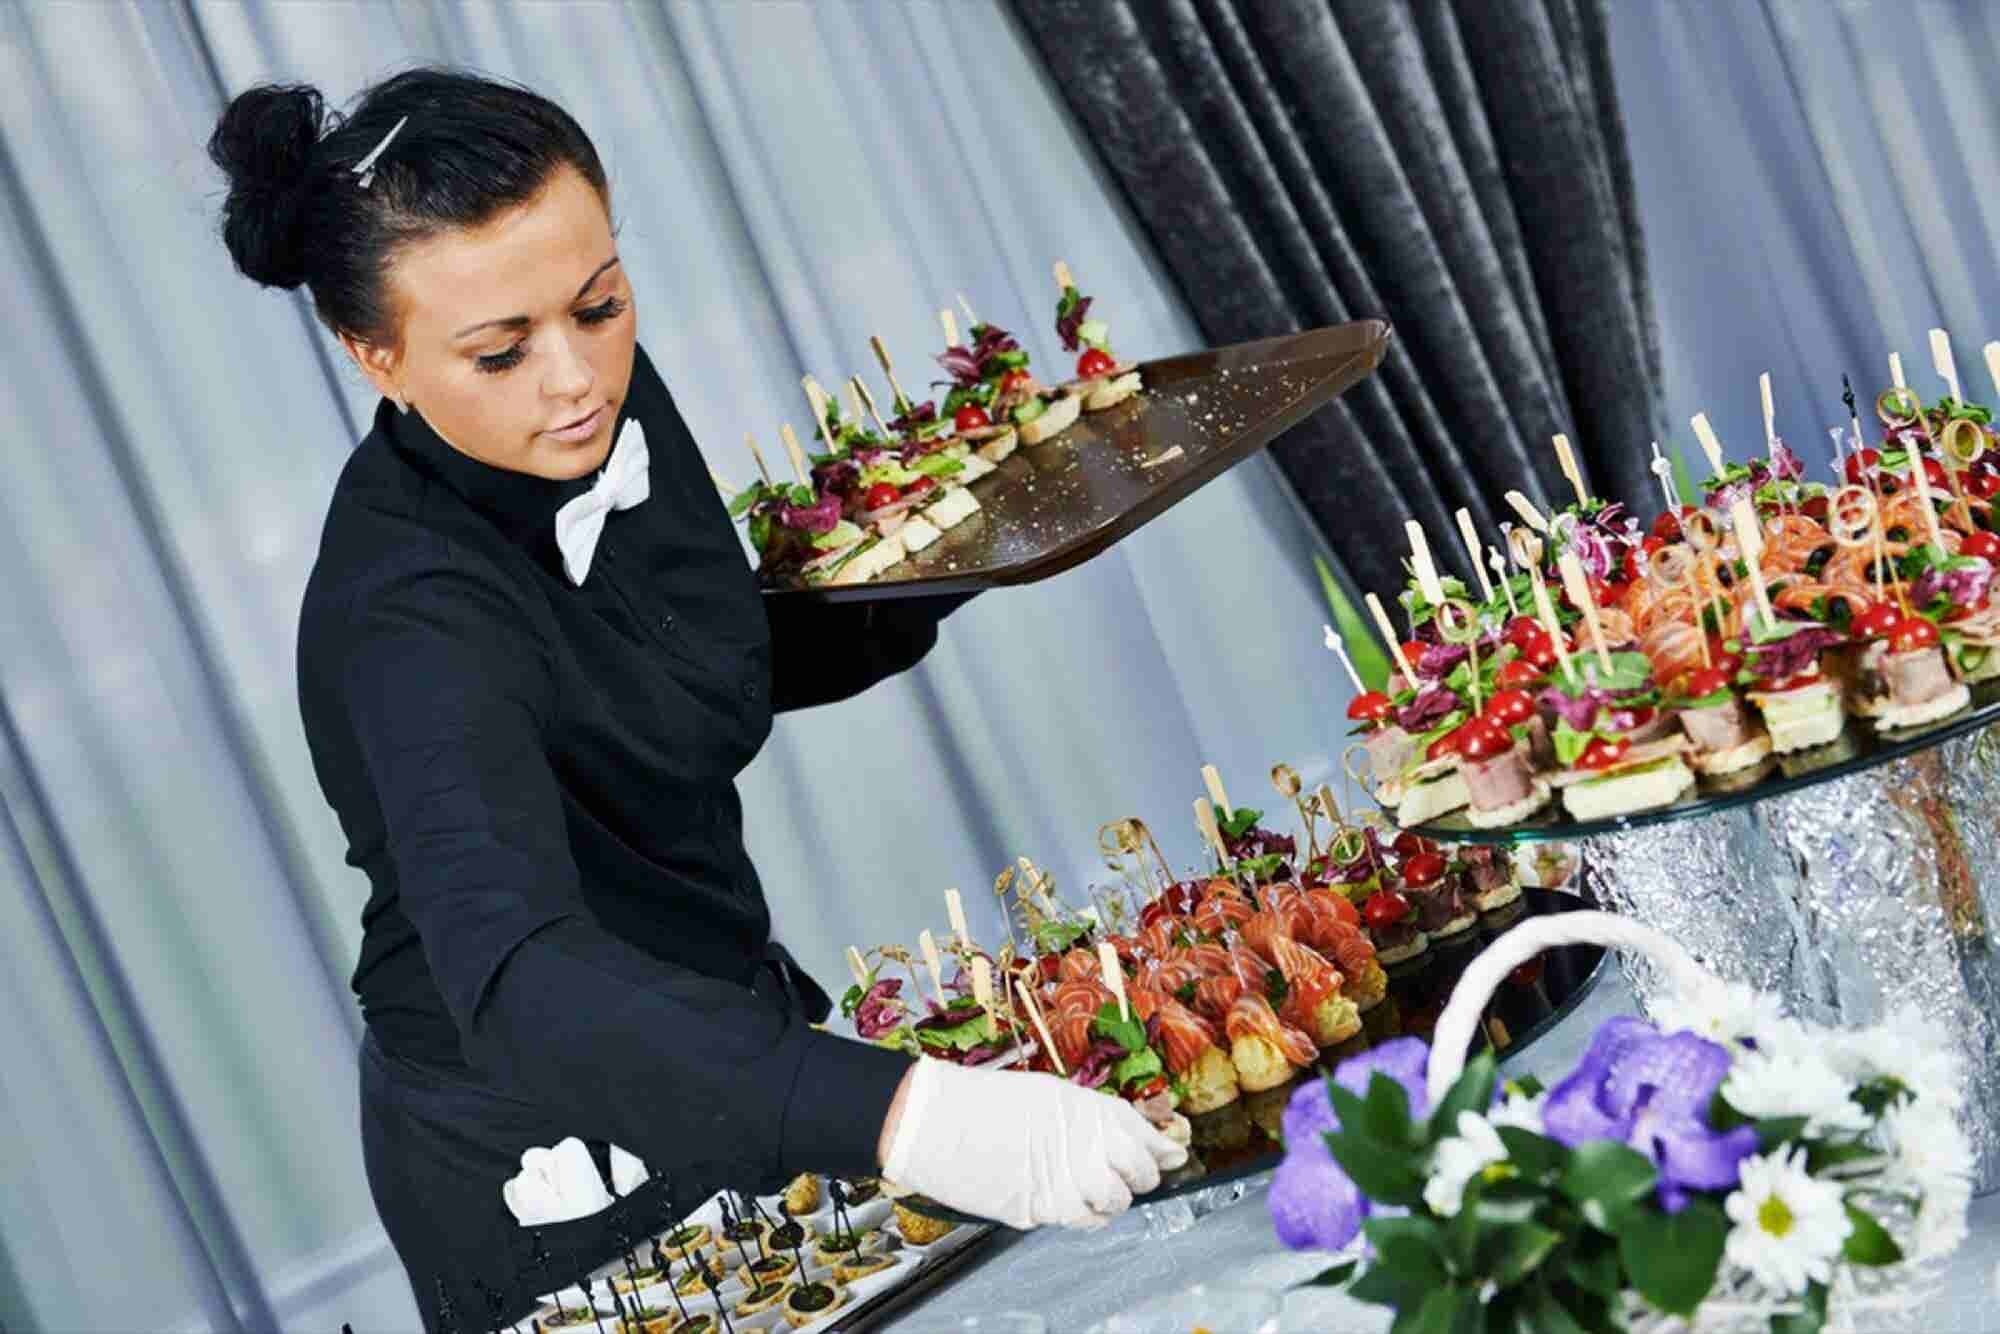 Room By Hour: The New Trend in Hospitality